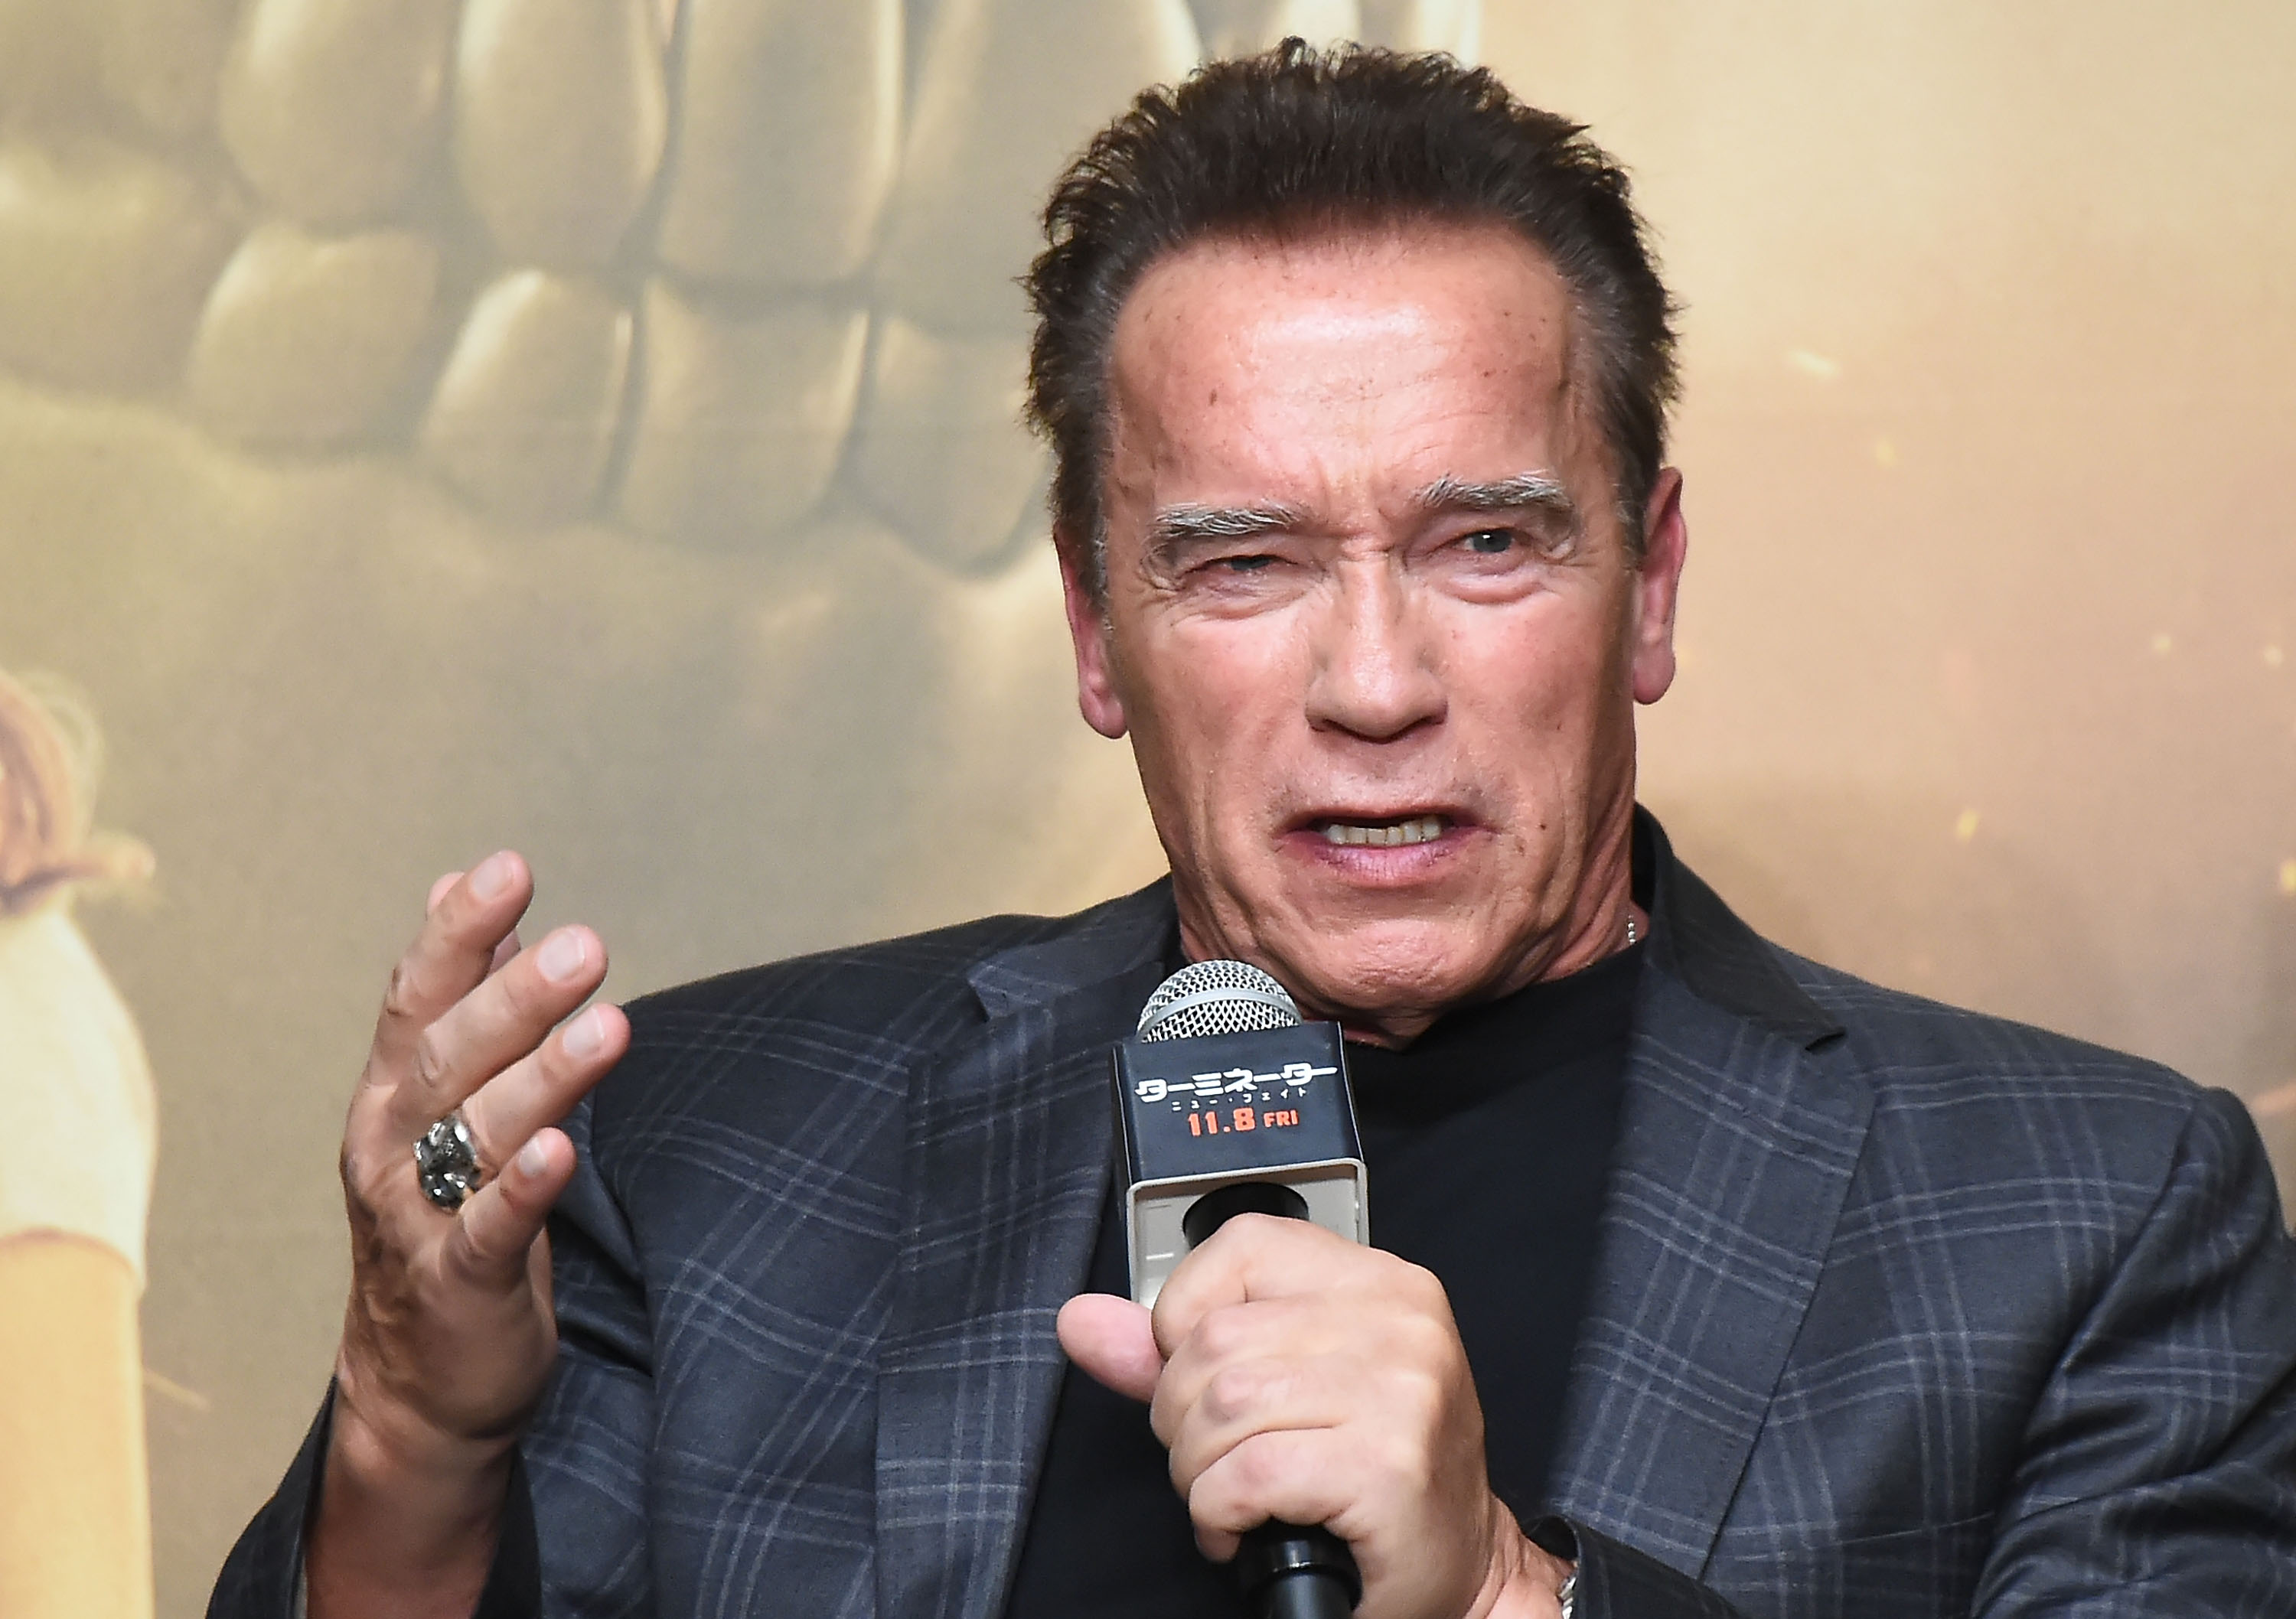 Arnold Schwarzenegger Is Making the Move to a Scripted TV Show